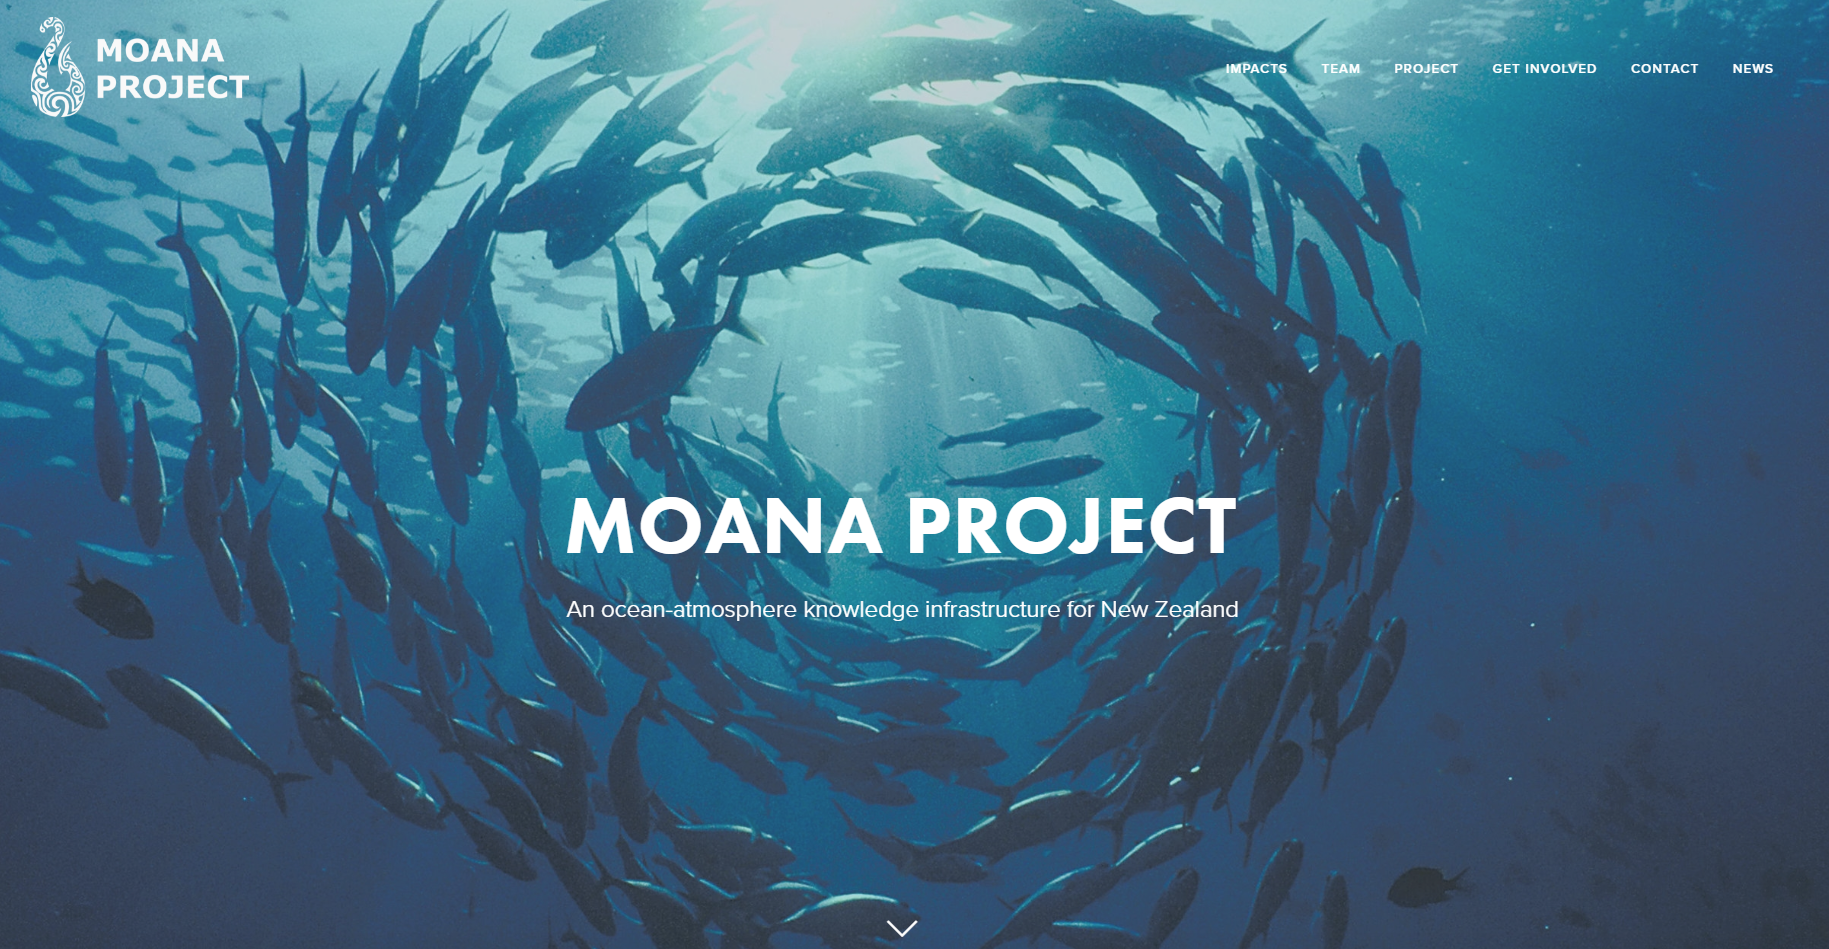 Details of the Moana Project are provided on  www.moanaproject.org